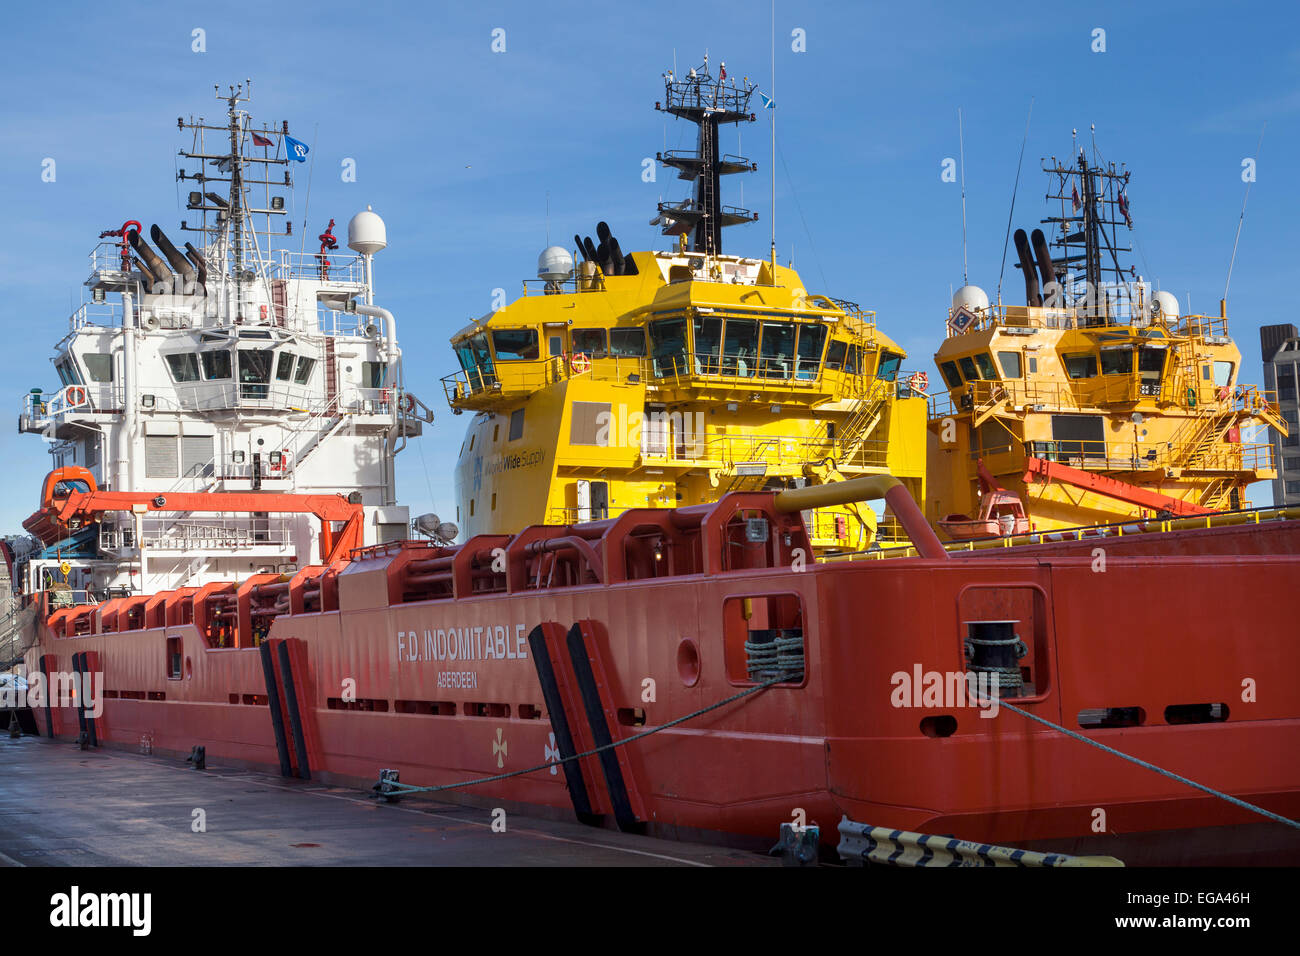 Oil Supply Ships in Aberdeen Harbour - Stock Image